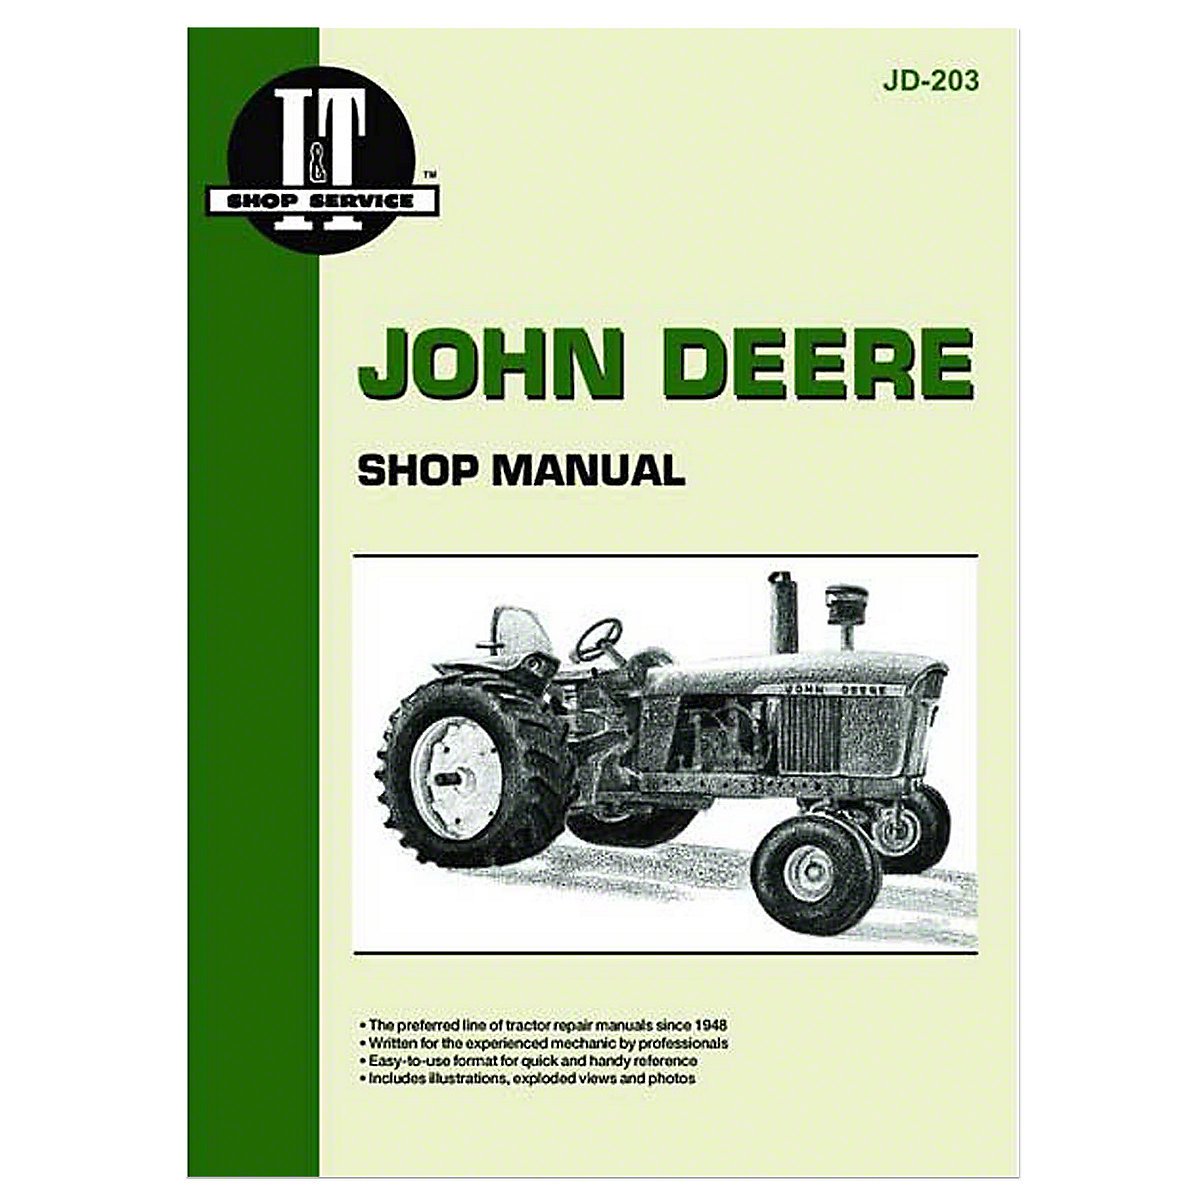 """John Deere Shop Manual"" -- I&T Shop Manual Collection. """